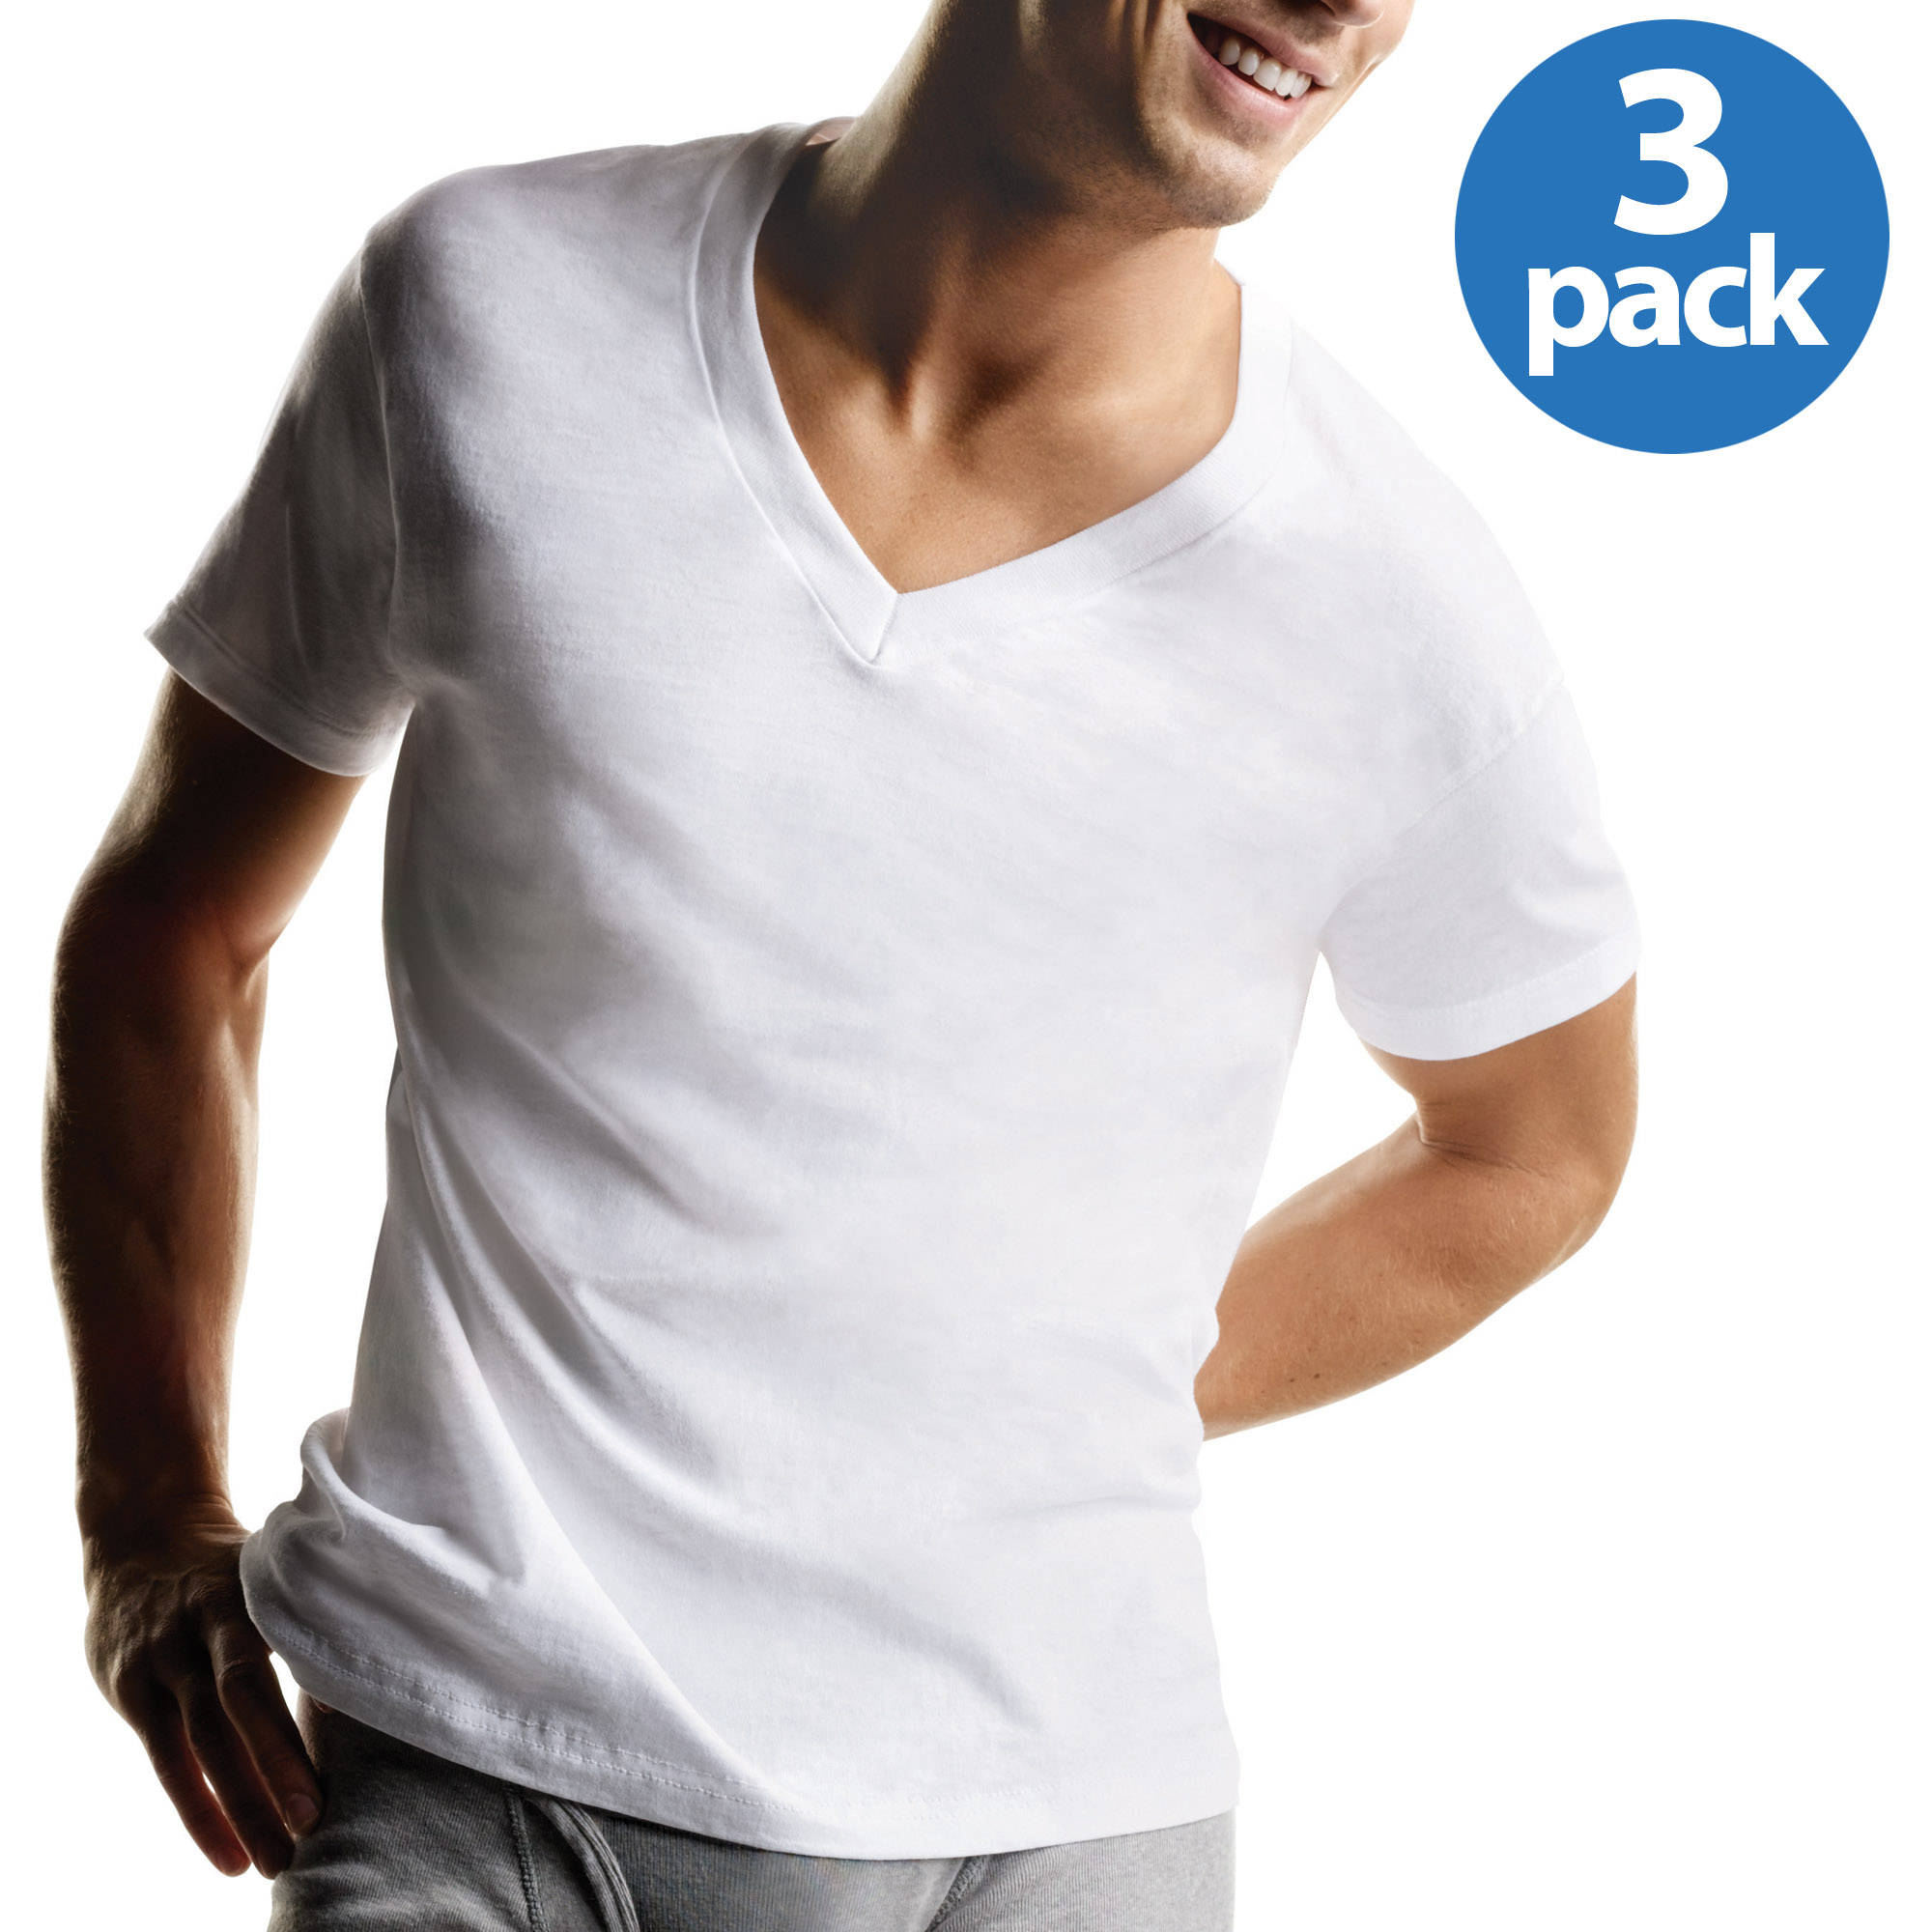 Hanes Men's ComfortSoft White V-Neck T-Shirt 3-Pack